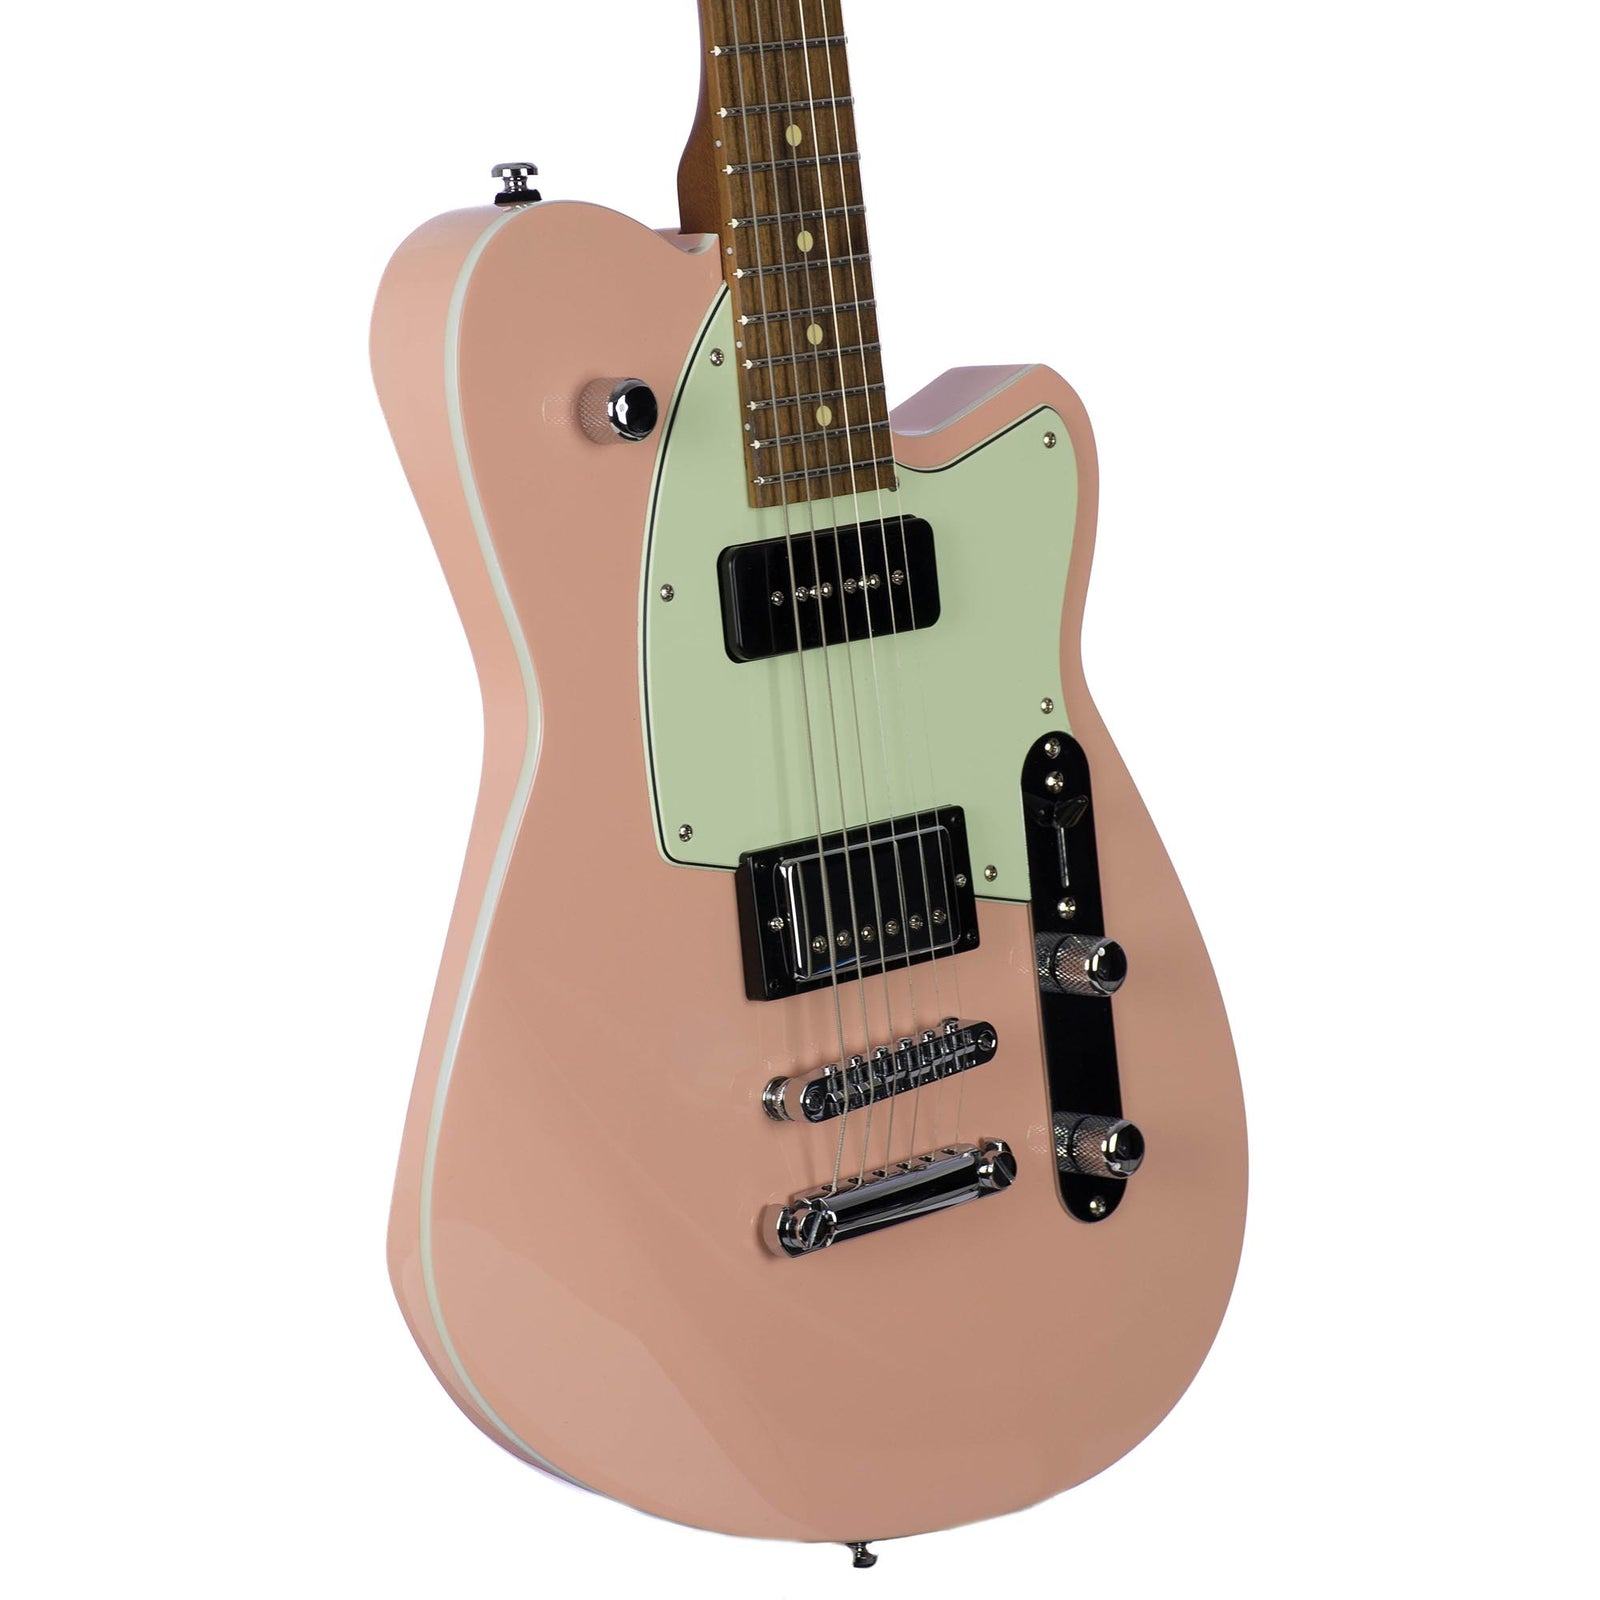 Reverend Double Agent OG Orchid Pink Extra Dark Roasted Neck Russo Music Exclusive